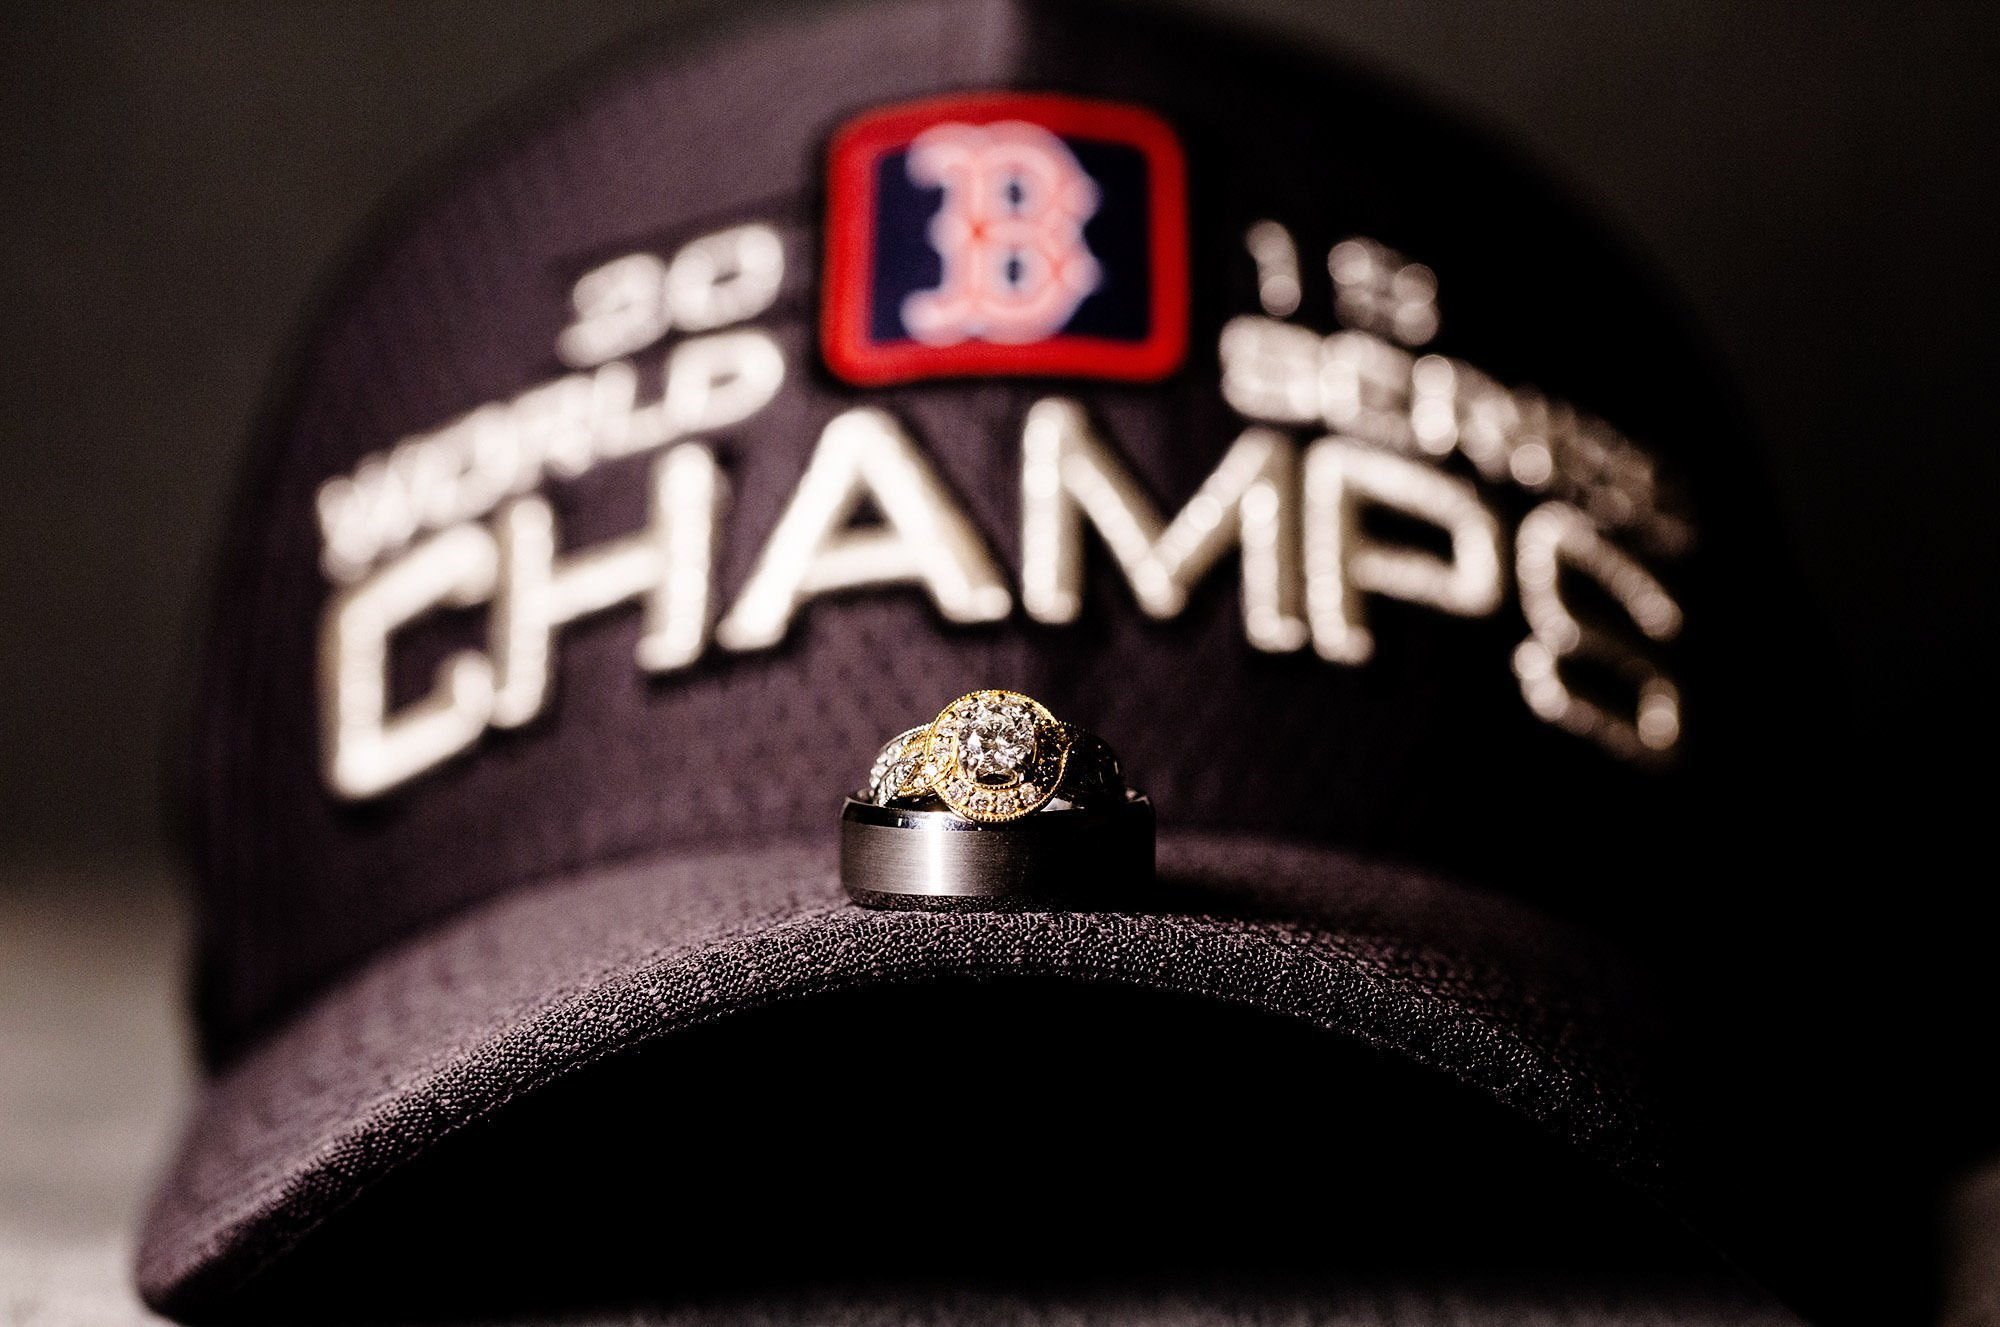 A ring detail on a Boston Red Sox Champs hat.